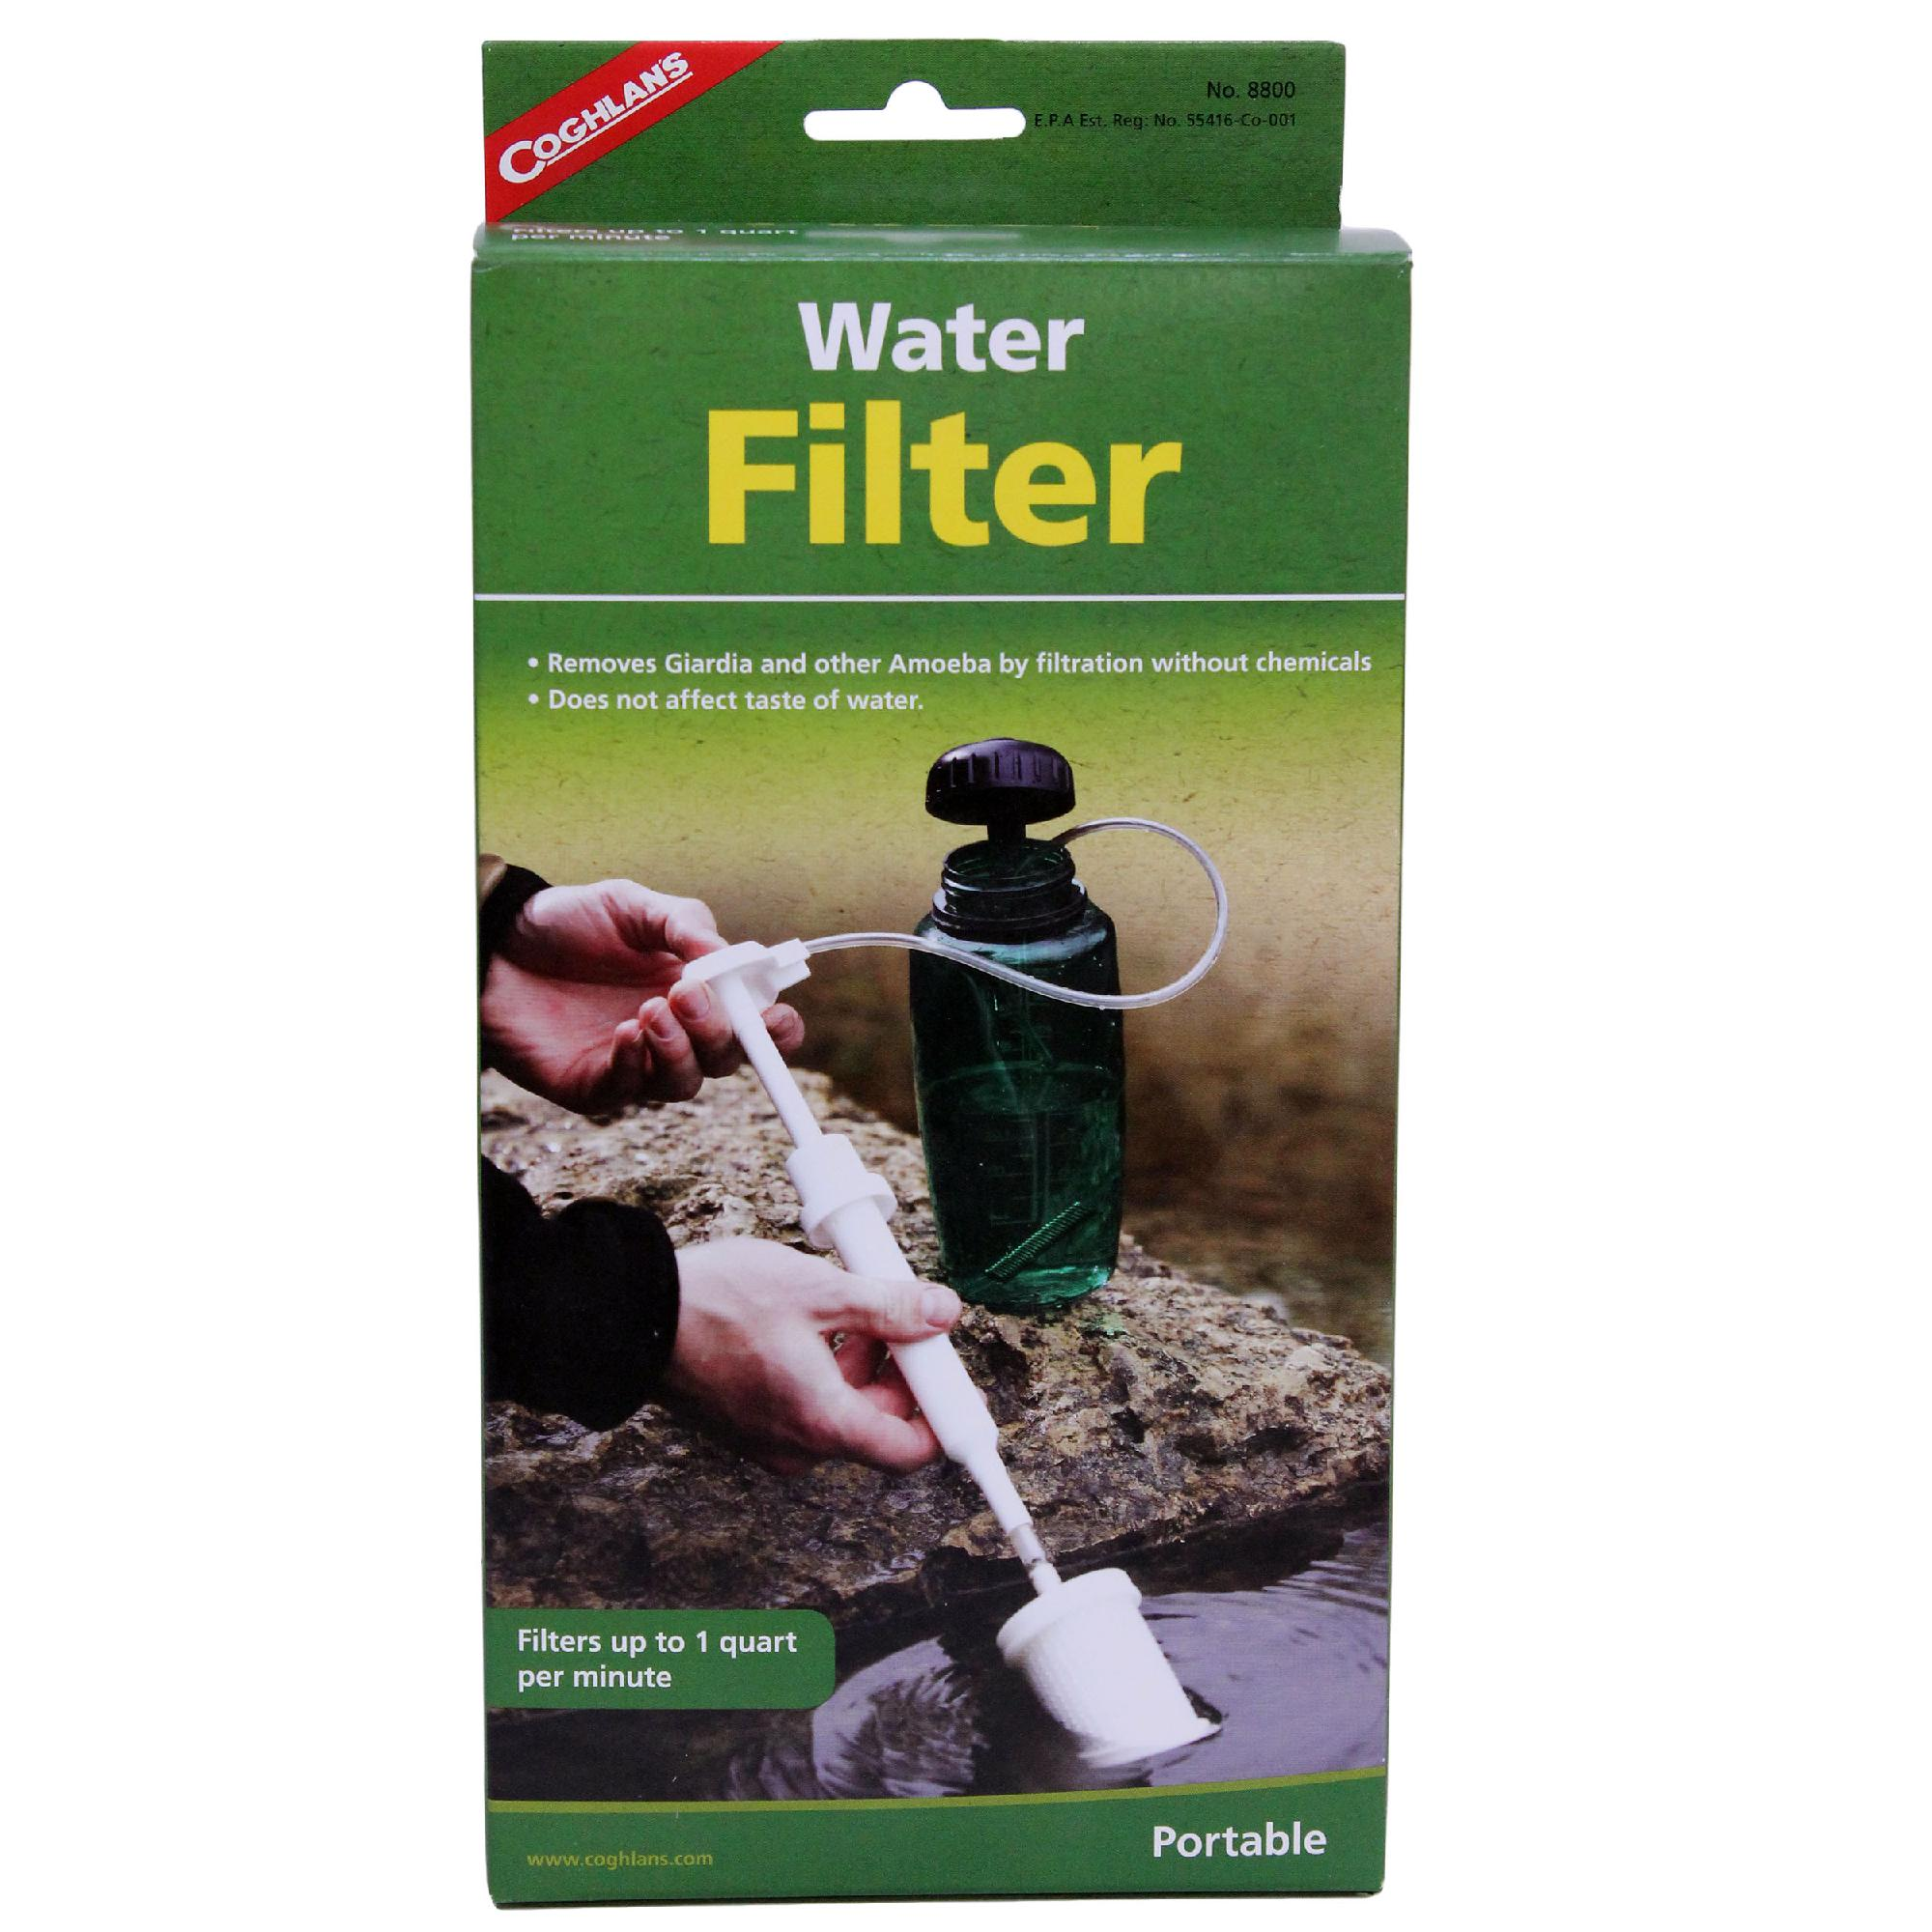 LIGHTWEIGHT WATER FILTER PUMP//STRAW UP TO 1 QUART PER MINUTE COMPACT COGHLANS